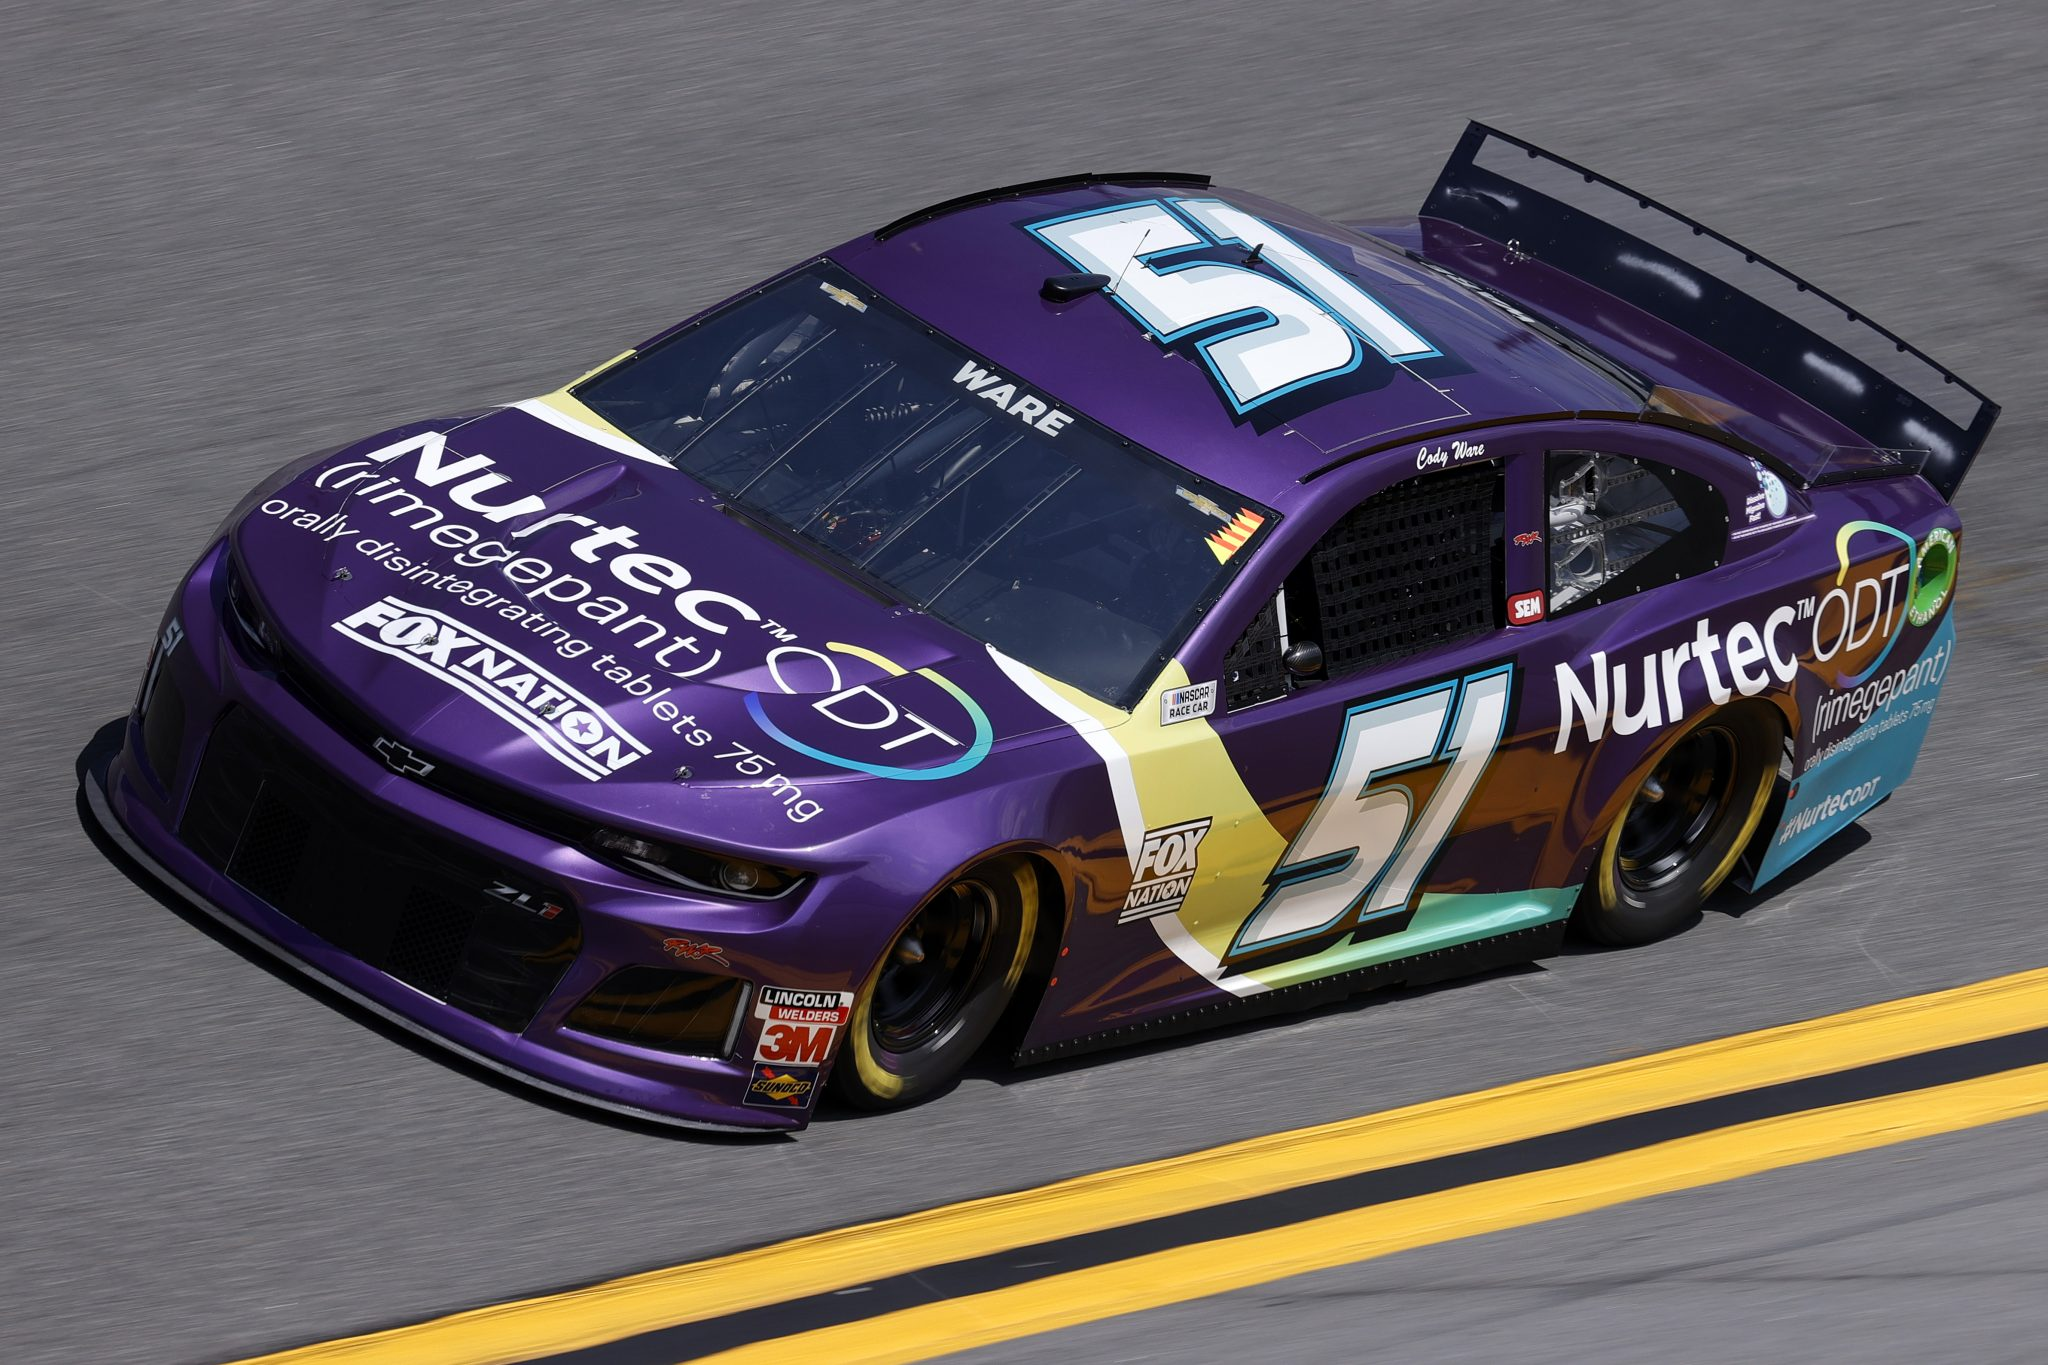 DAYTONA BEACH, FLORIDA - FEBRUARY 10: Cody Ware, driver of the #51 Nurtec ODT Chevrolet, drives during practice for the NASCAR Cup Series 63rd Annual Daytona 500 at Daytona International Speedway on February 10, 2021 in Daytona Beach, Florida. (Photo by Jared C. Tilton/Getty Images) | Getty Images